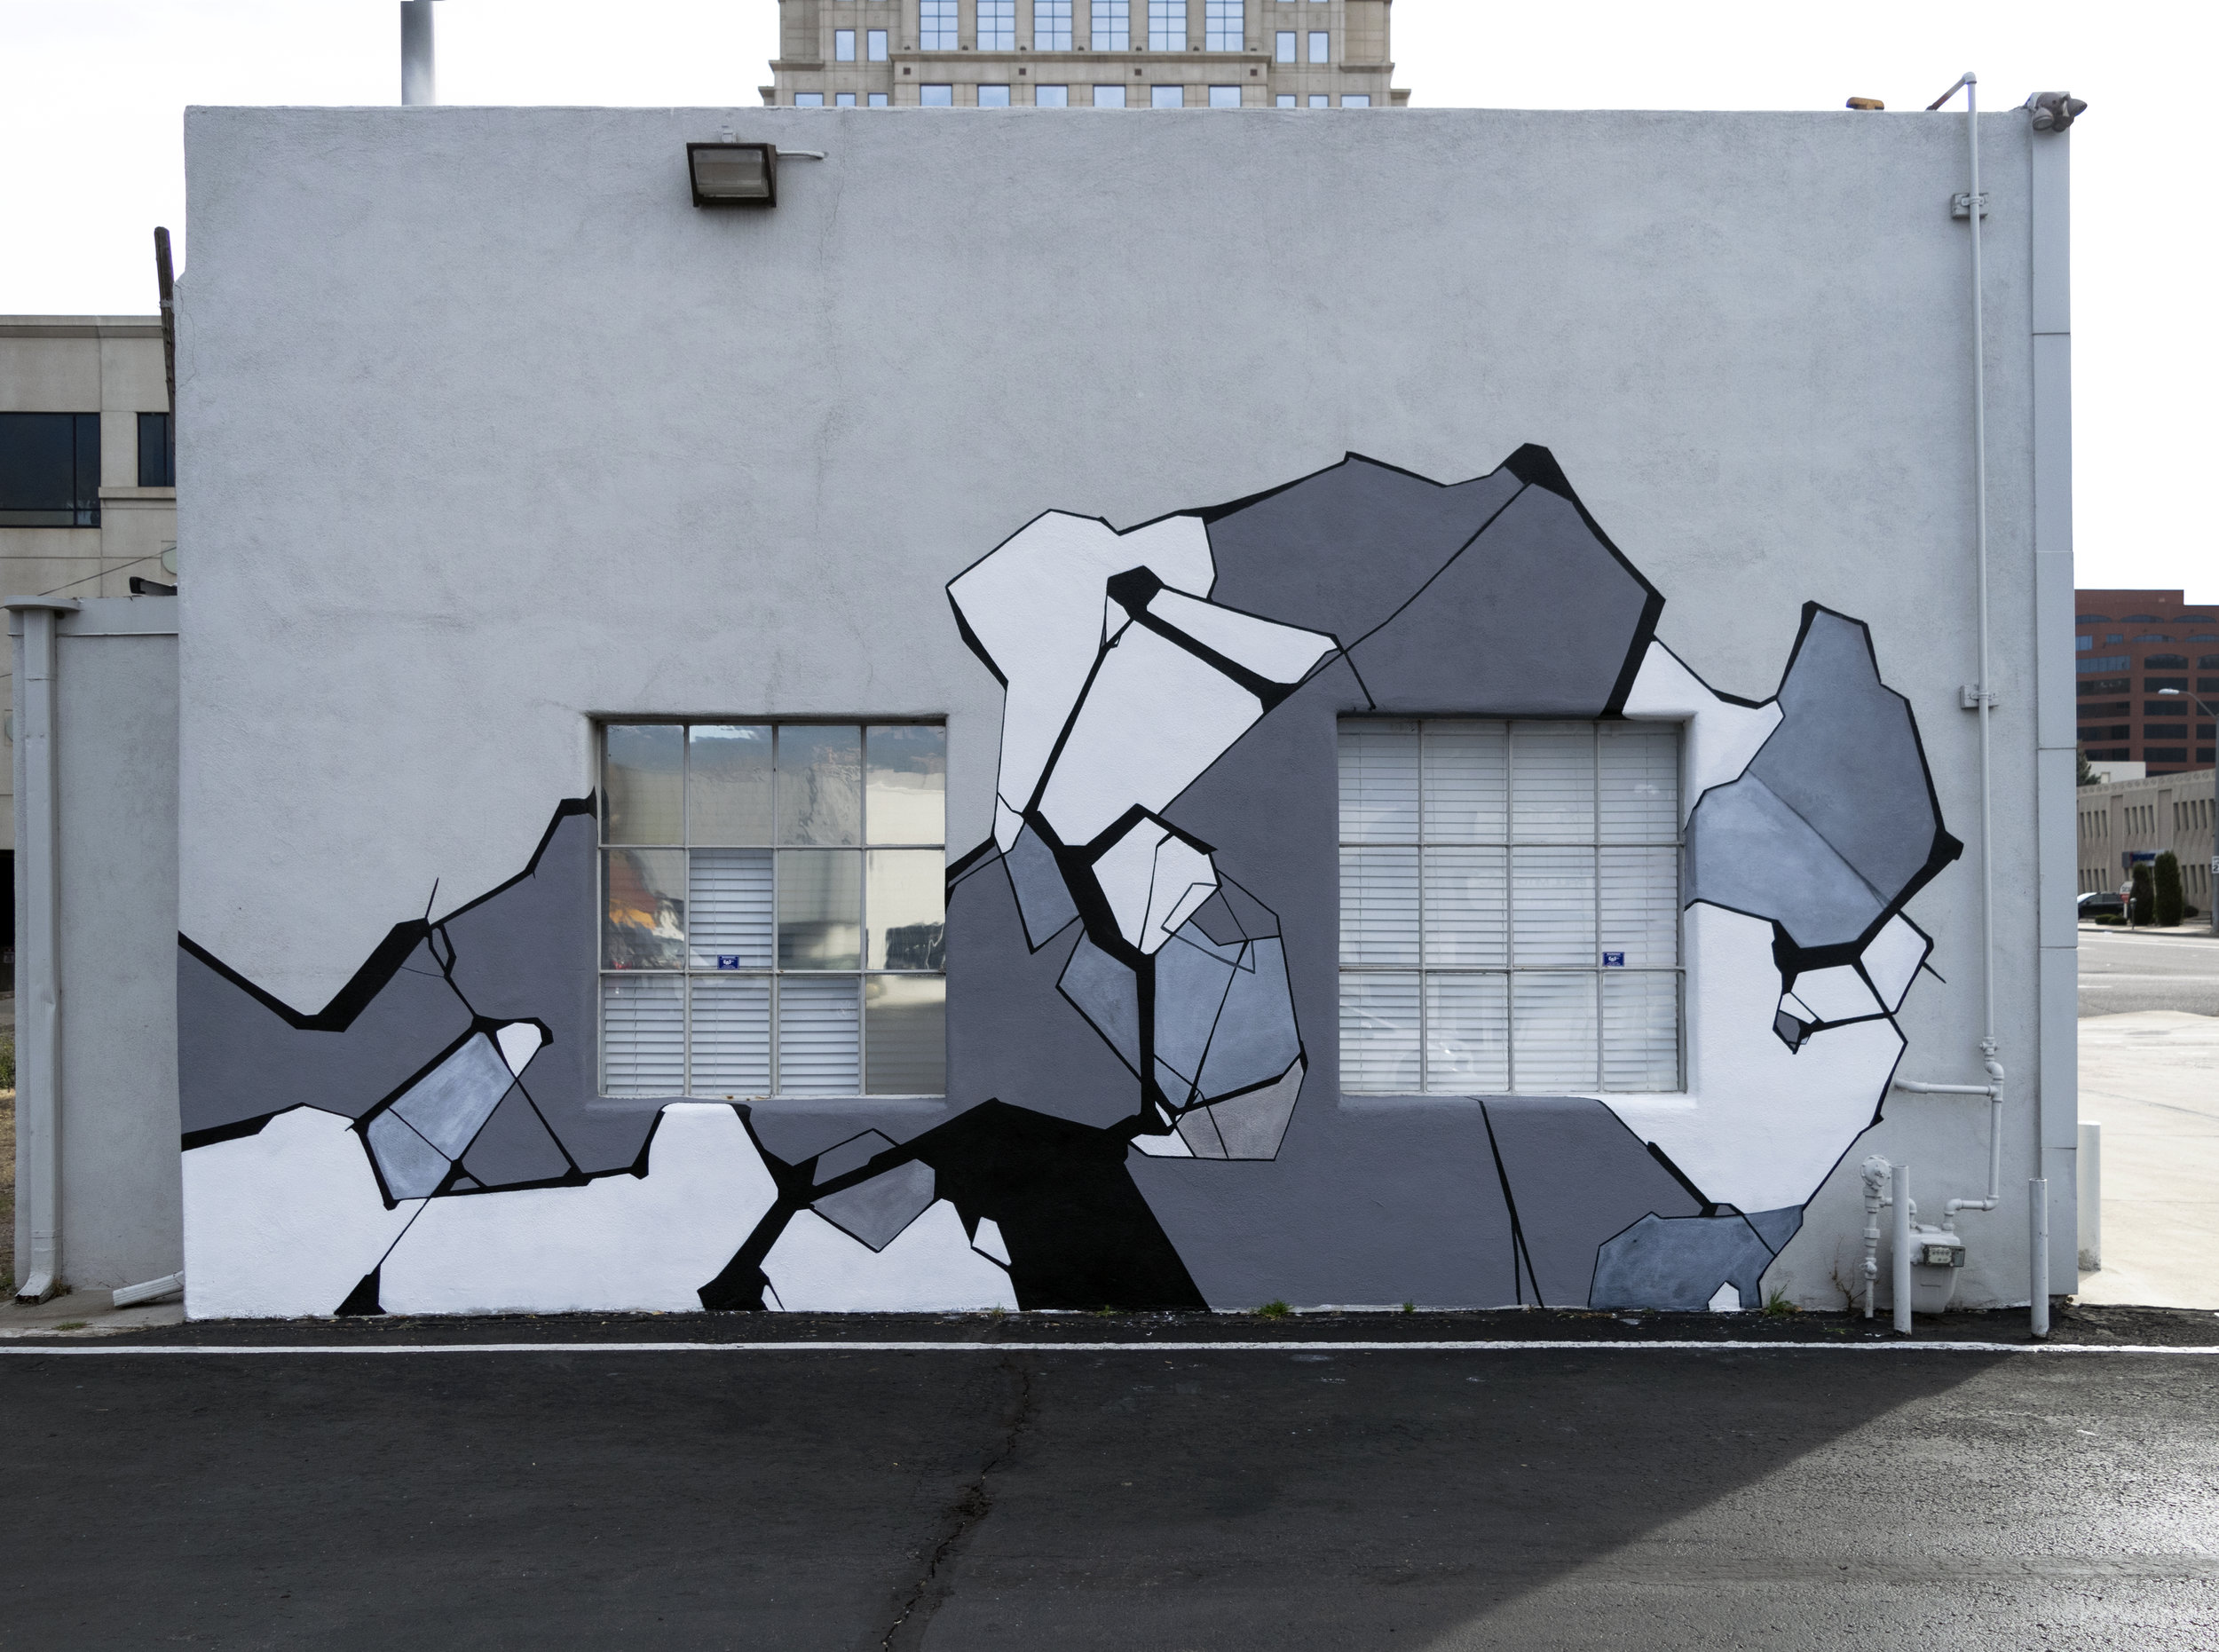 Transmutation |  102 W. CO. AVE. COS. CO. 80903 | October 2018 | House paint on exterior, west facing, wall.